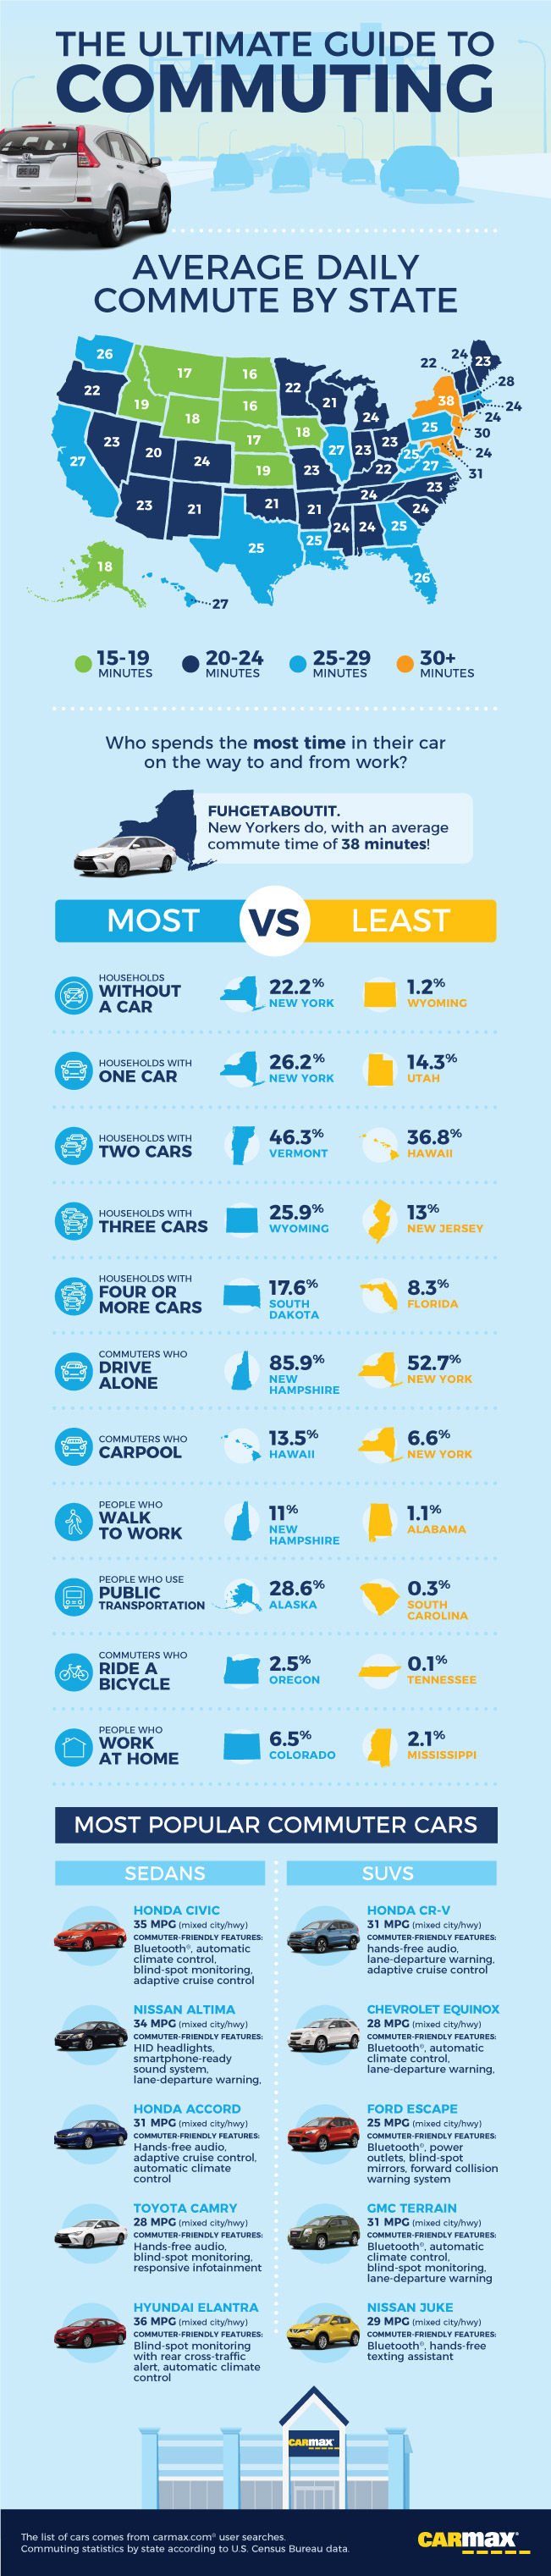 All You Need To Know About Commuting In America - Infographic